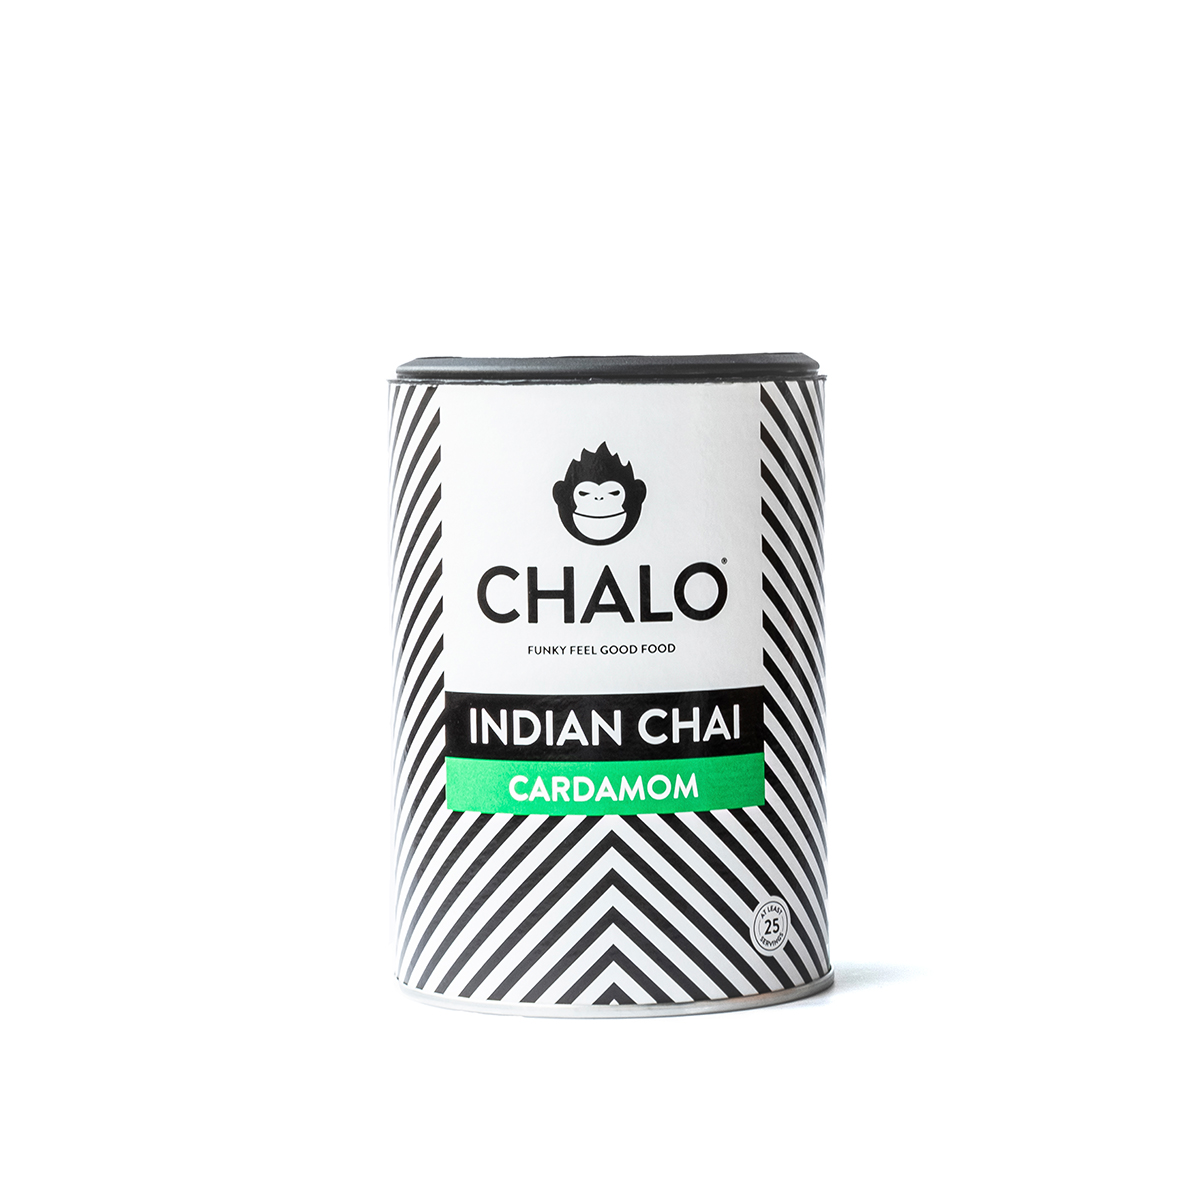 Indian Chai - Cardamom Chai latte